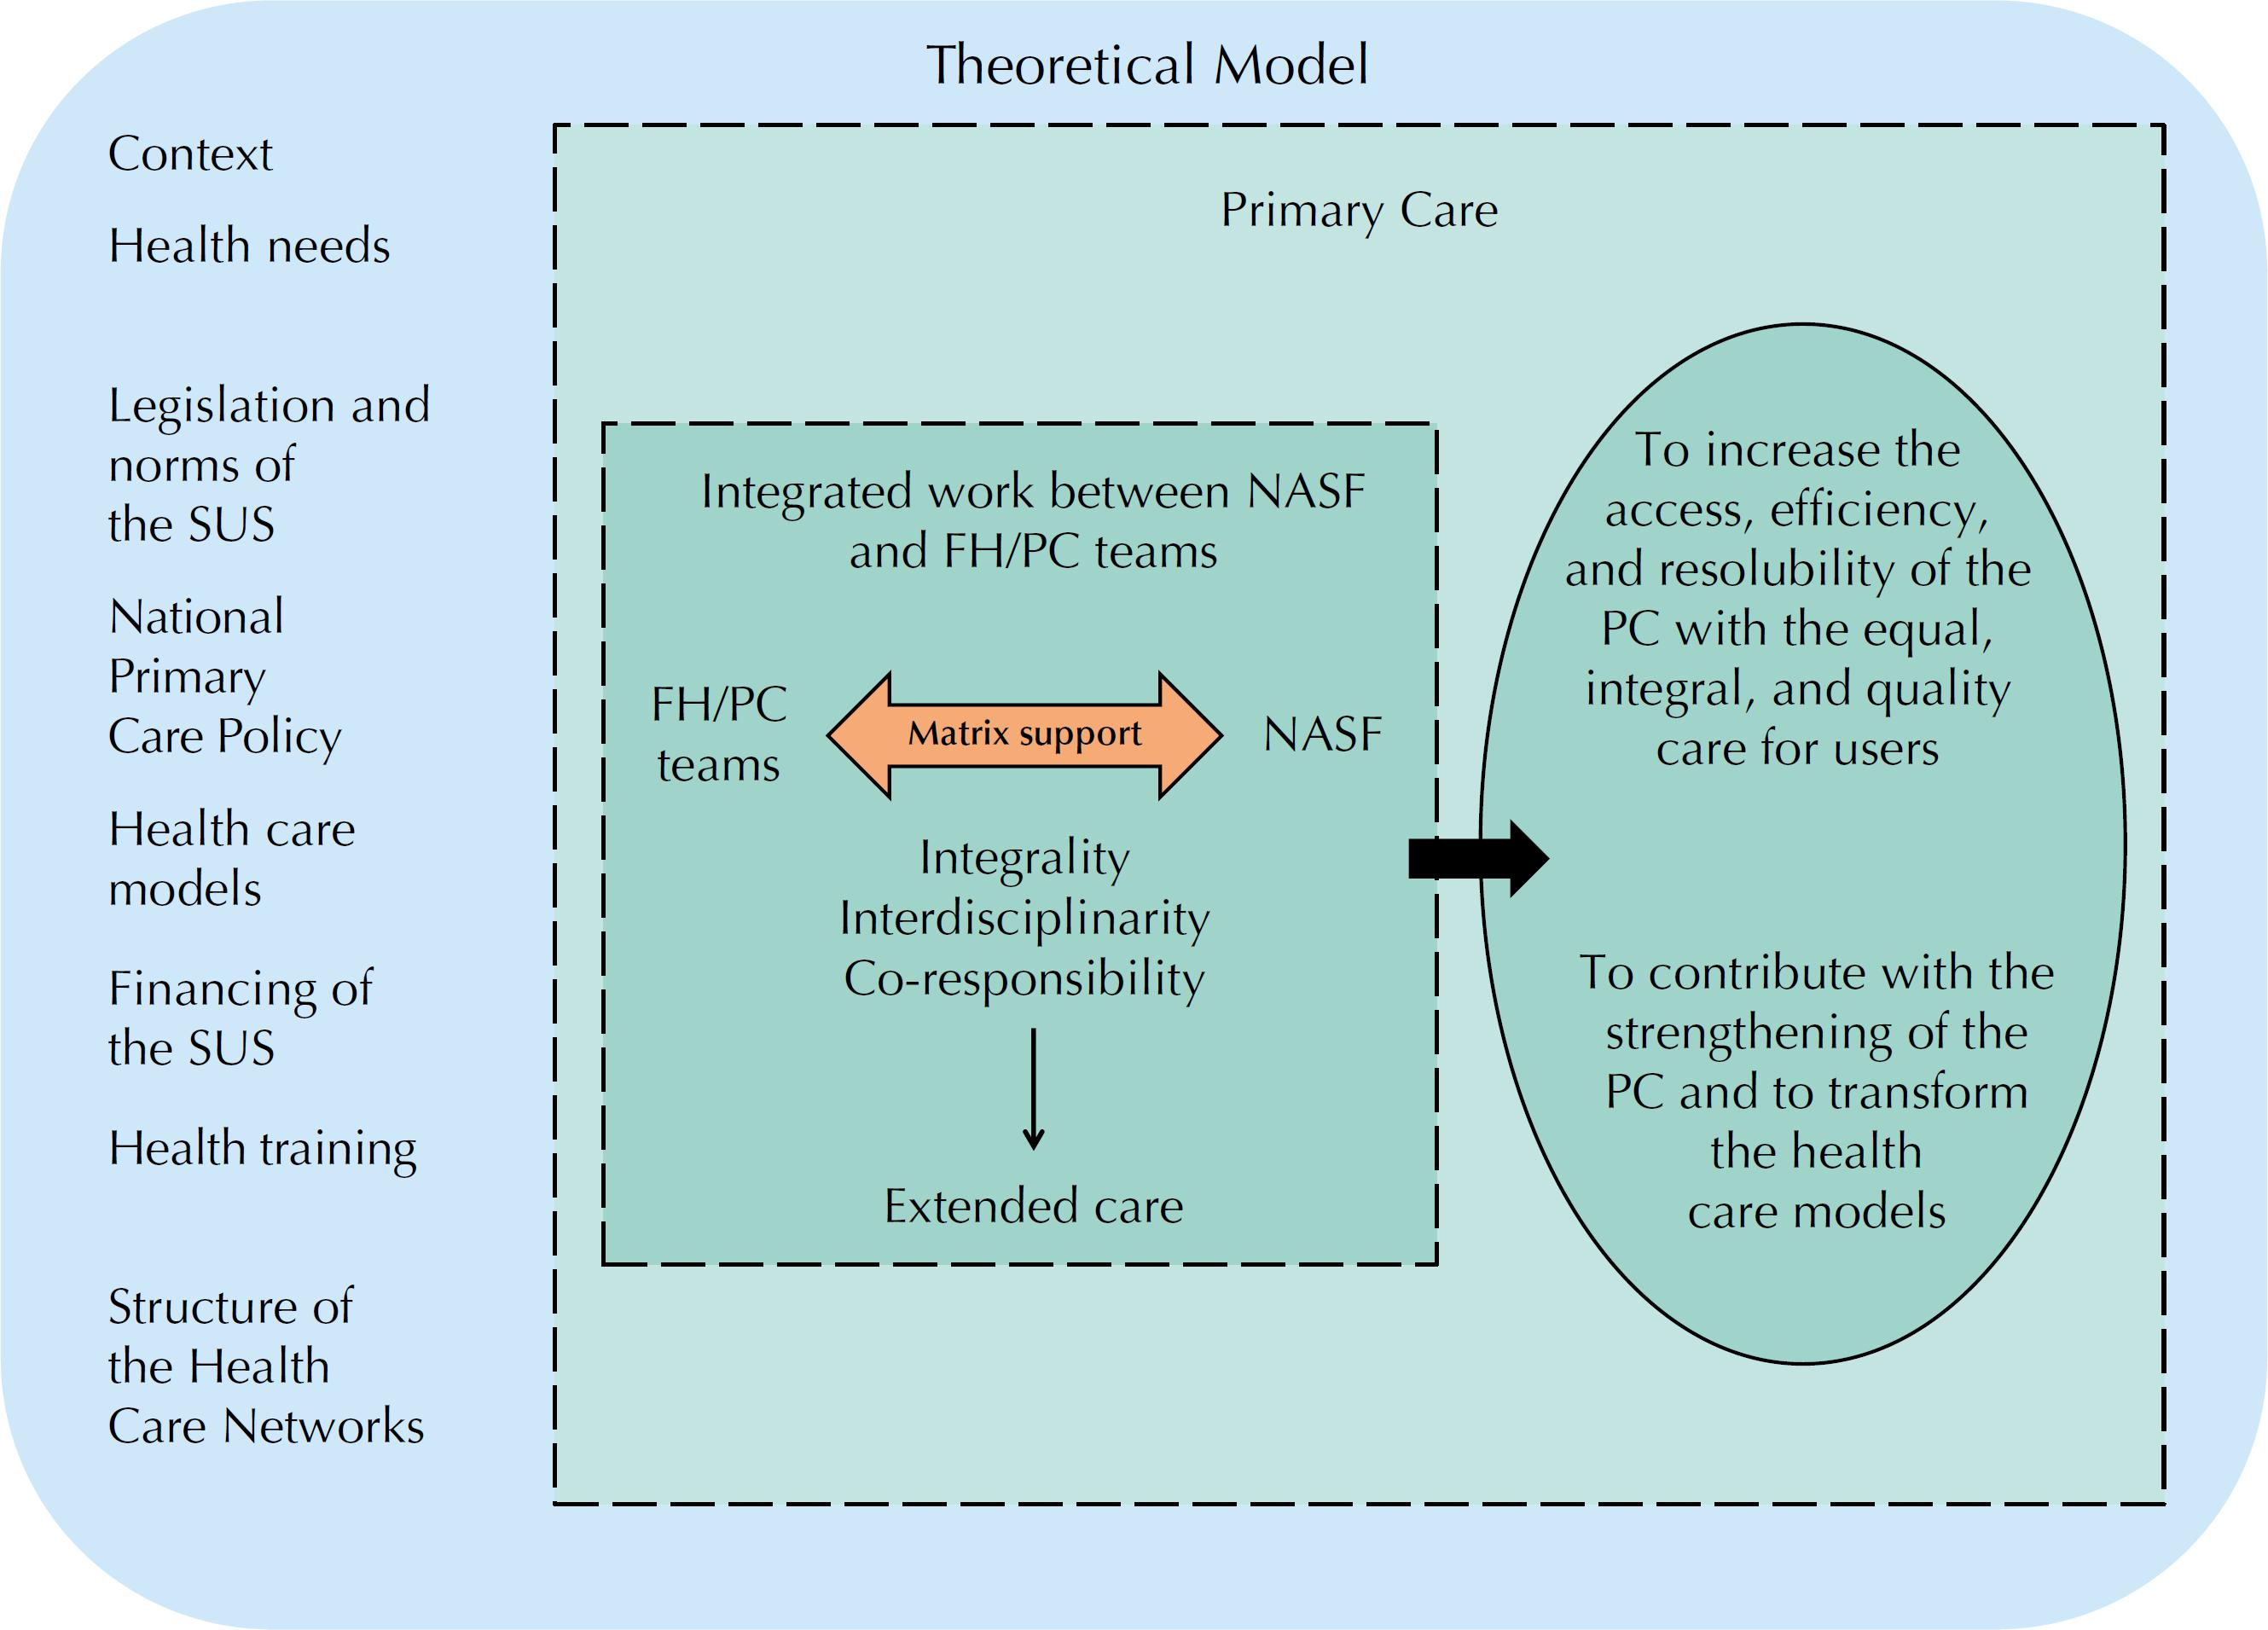 Schematic representation of the theoretical model of the Family Health Support Centers.